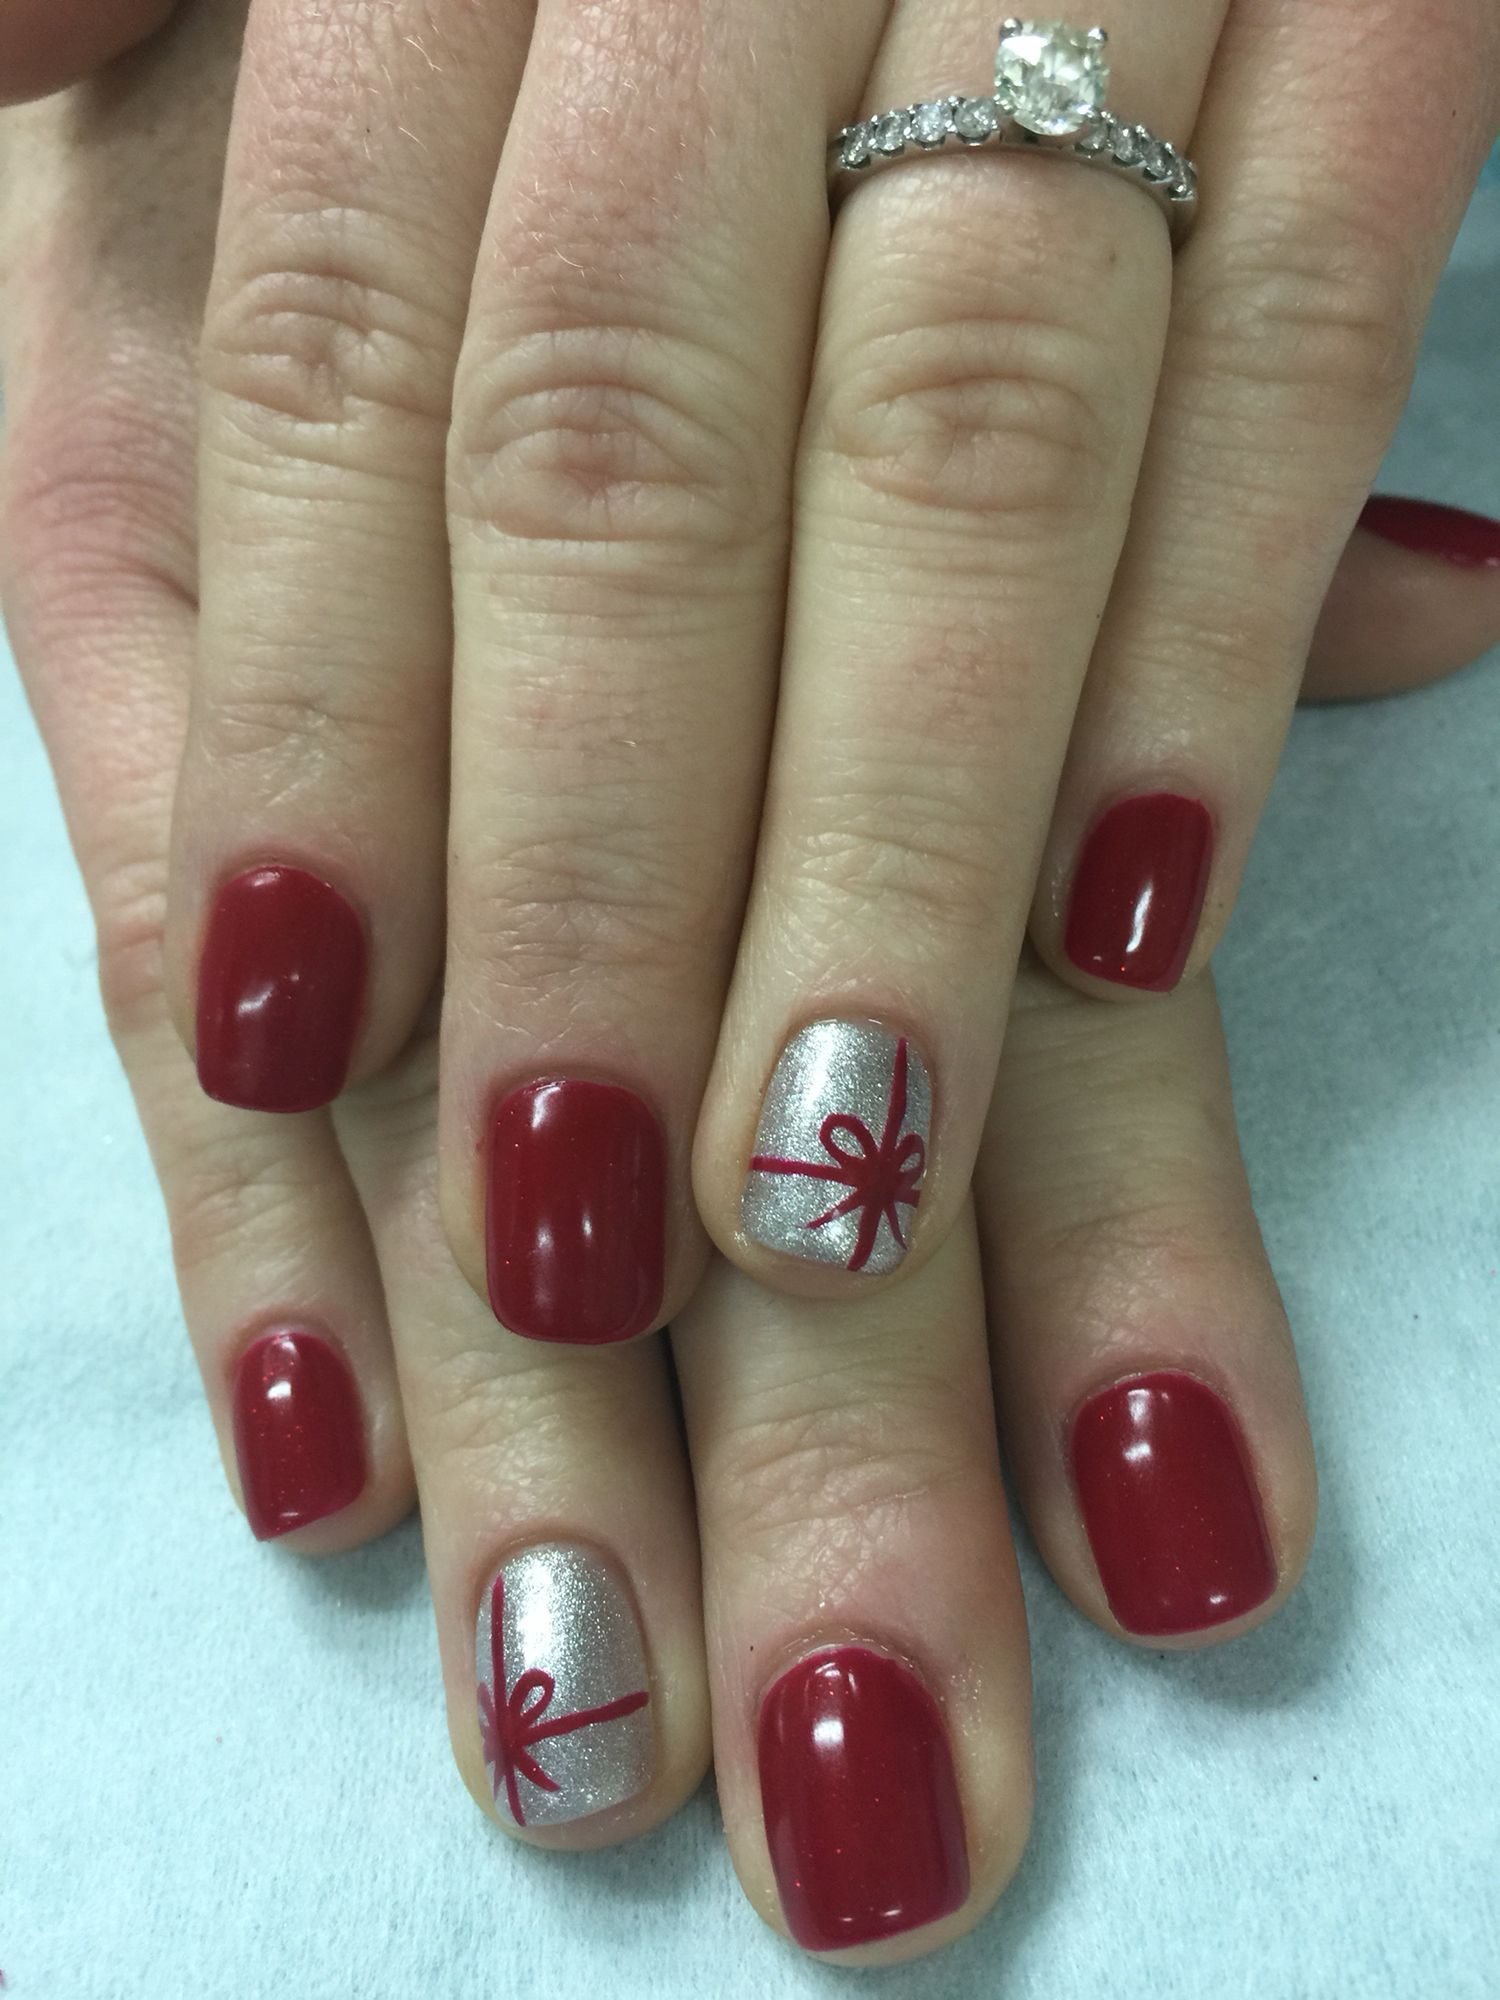 Red Gliiter Silver Sparkle With An Adorable Bow Christmas Gel Polish Over Non Toxic